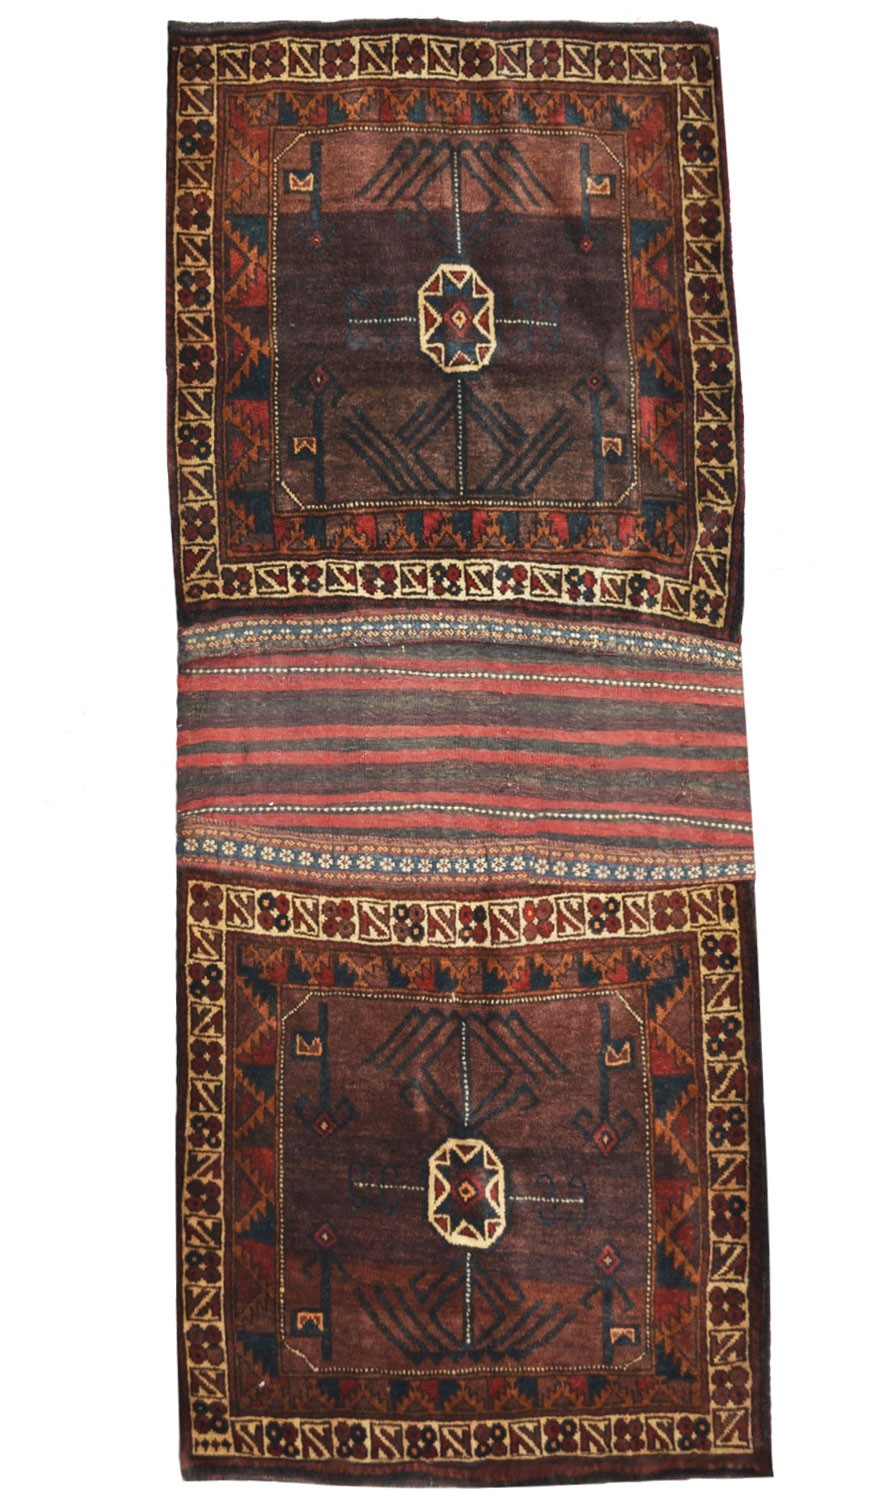 Shop Beautiful Patchwork Kilim Flat Woven Rug